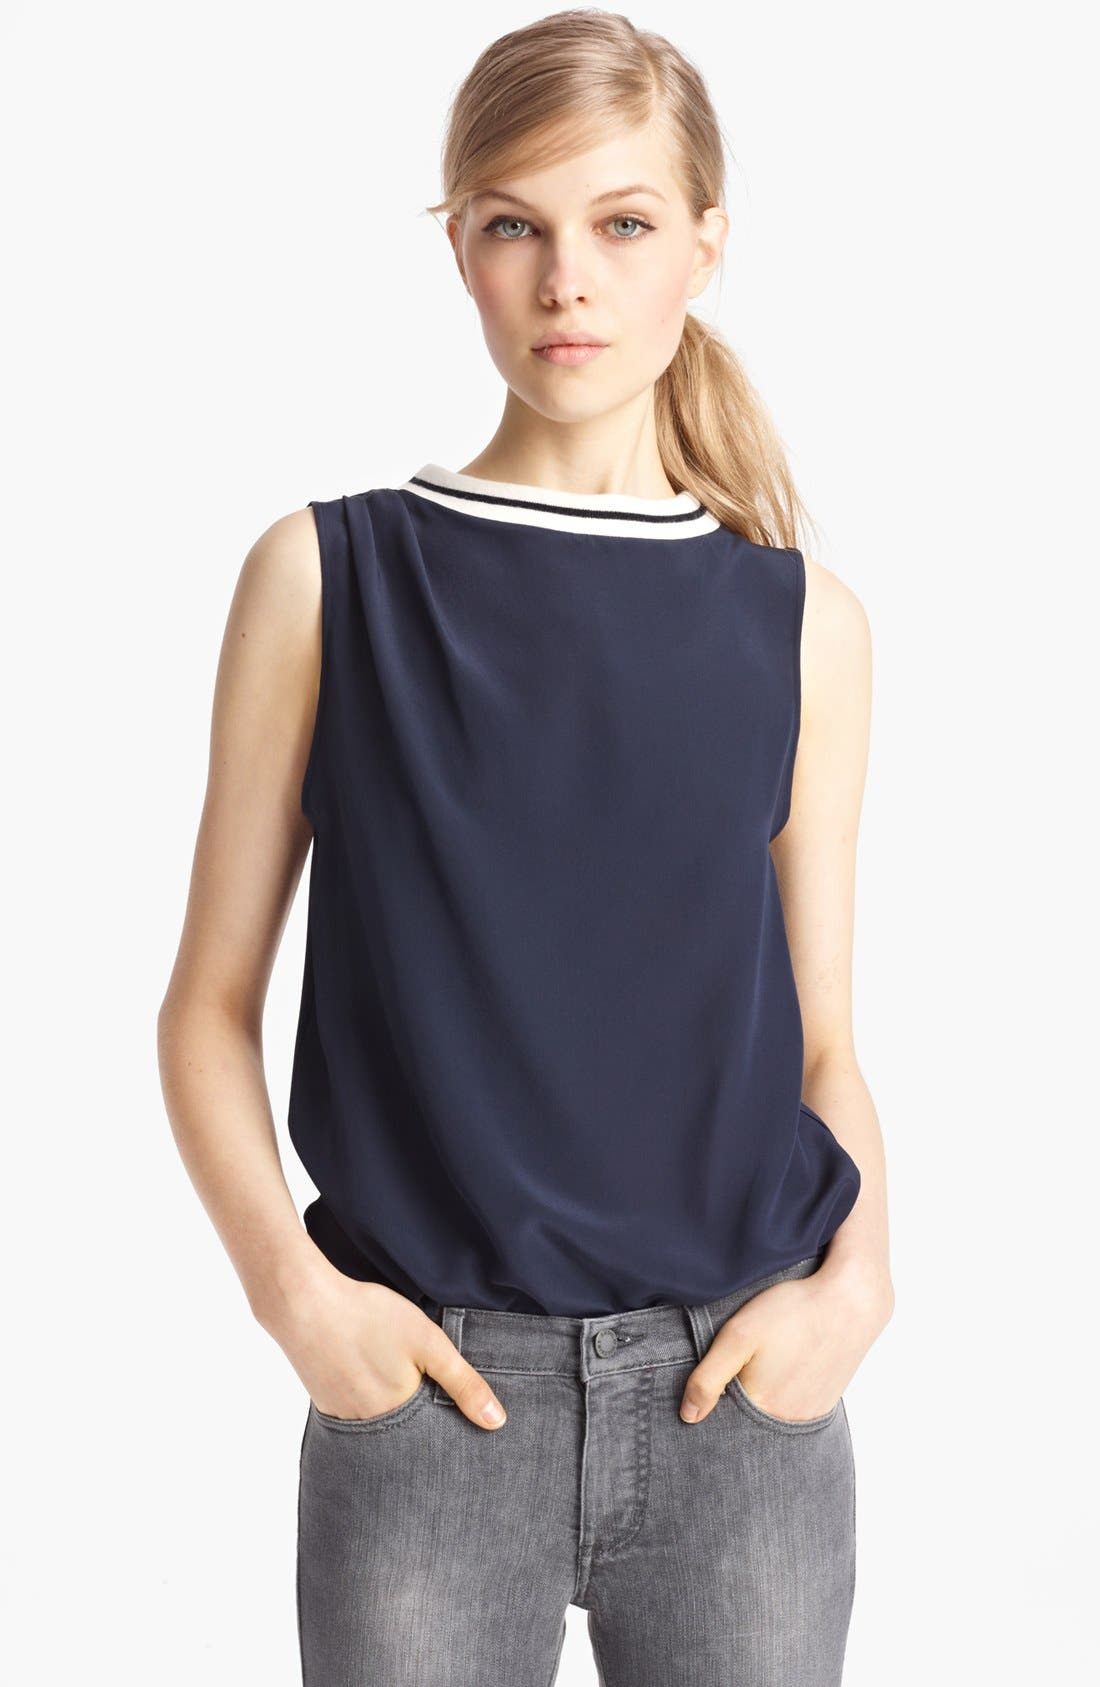 Main Image - Band of Outsiders Crêpe de Chine Tank